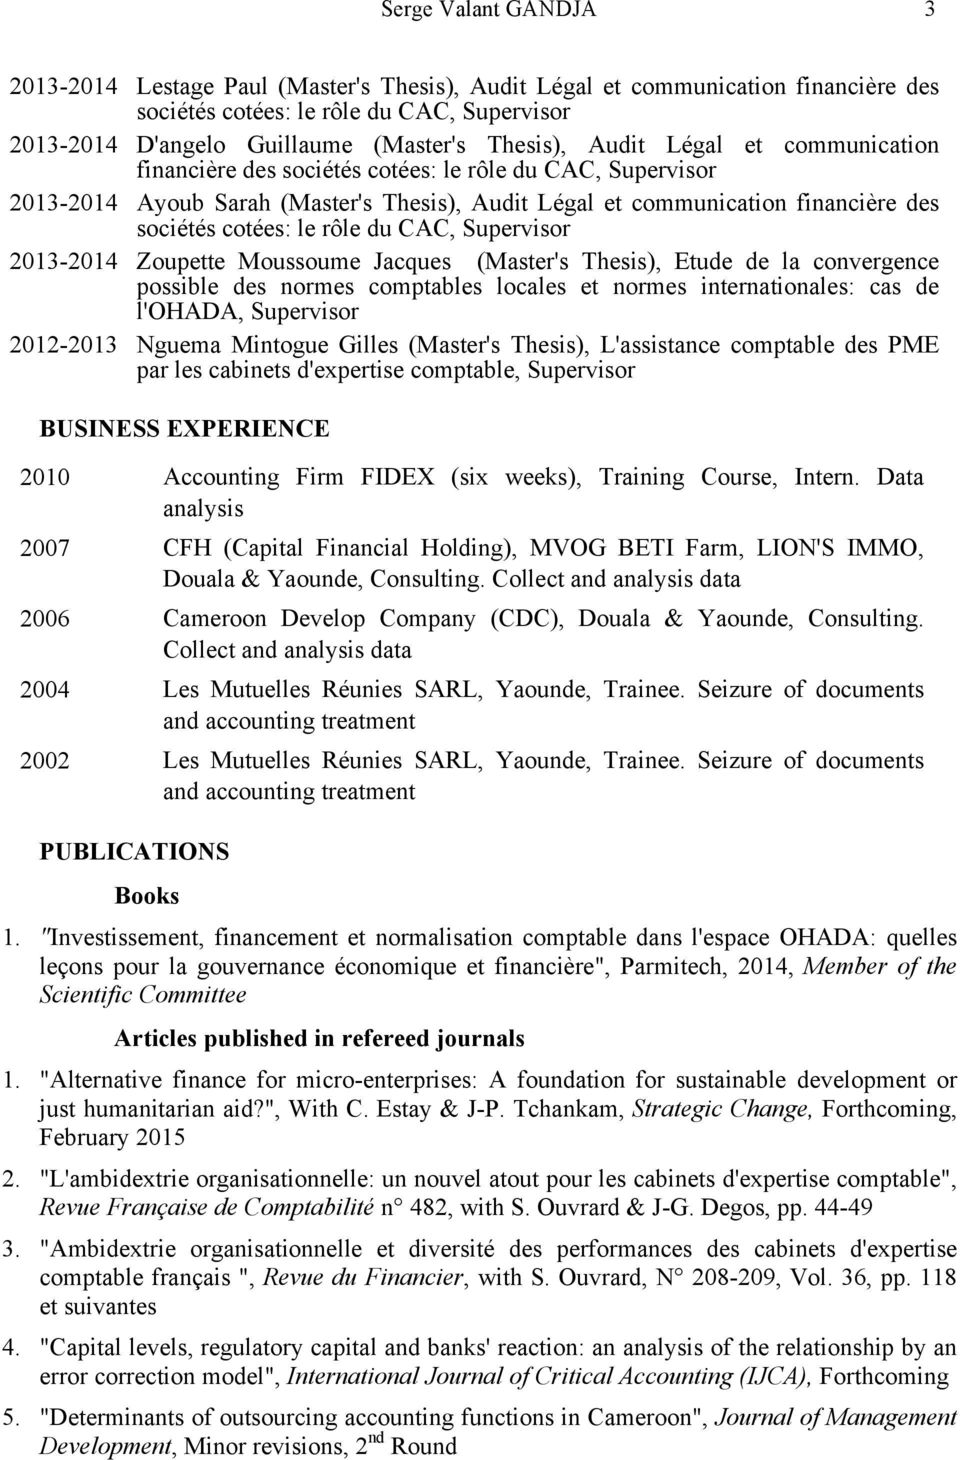 du CAC, Supervisor 2013-2014 Zoupette Moussoume Jacques (Master's Thesis), Etude de la convergence possible des normes comptables locales et normes internationales: cas de l'ohada, Supervisor